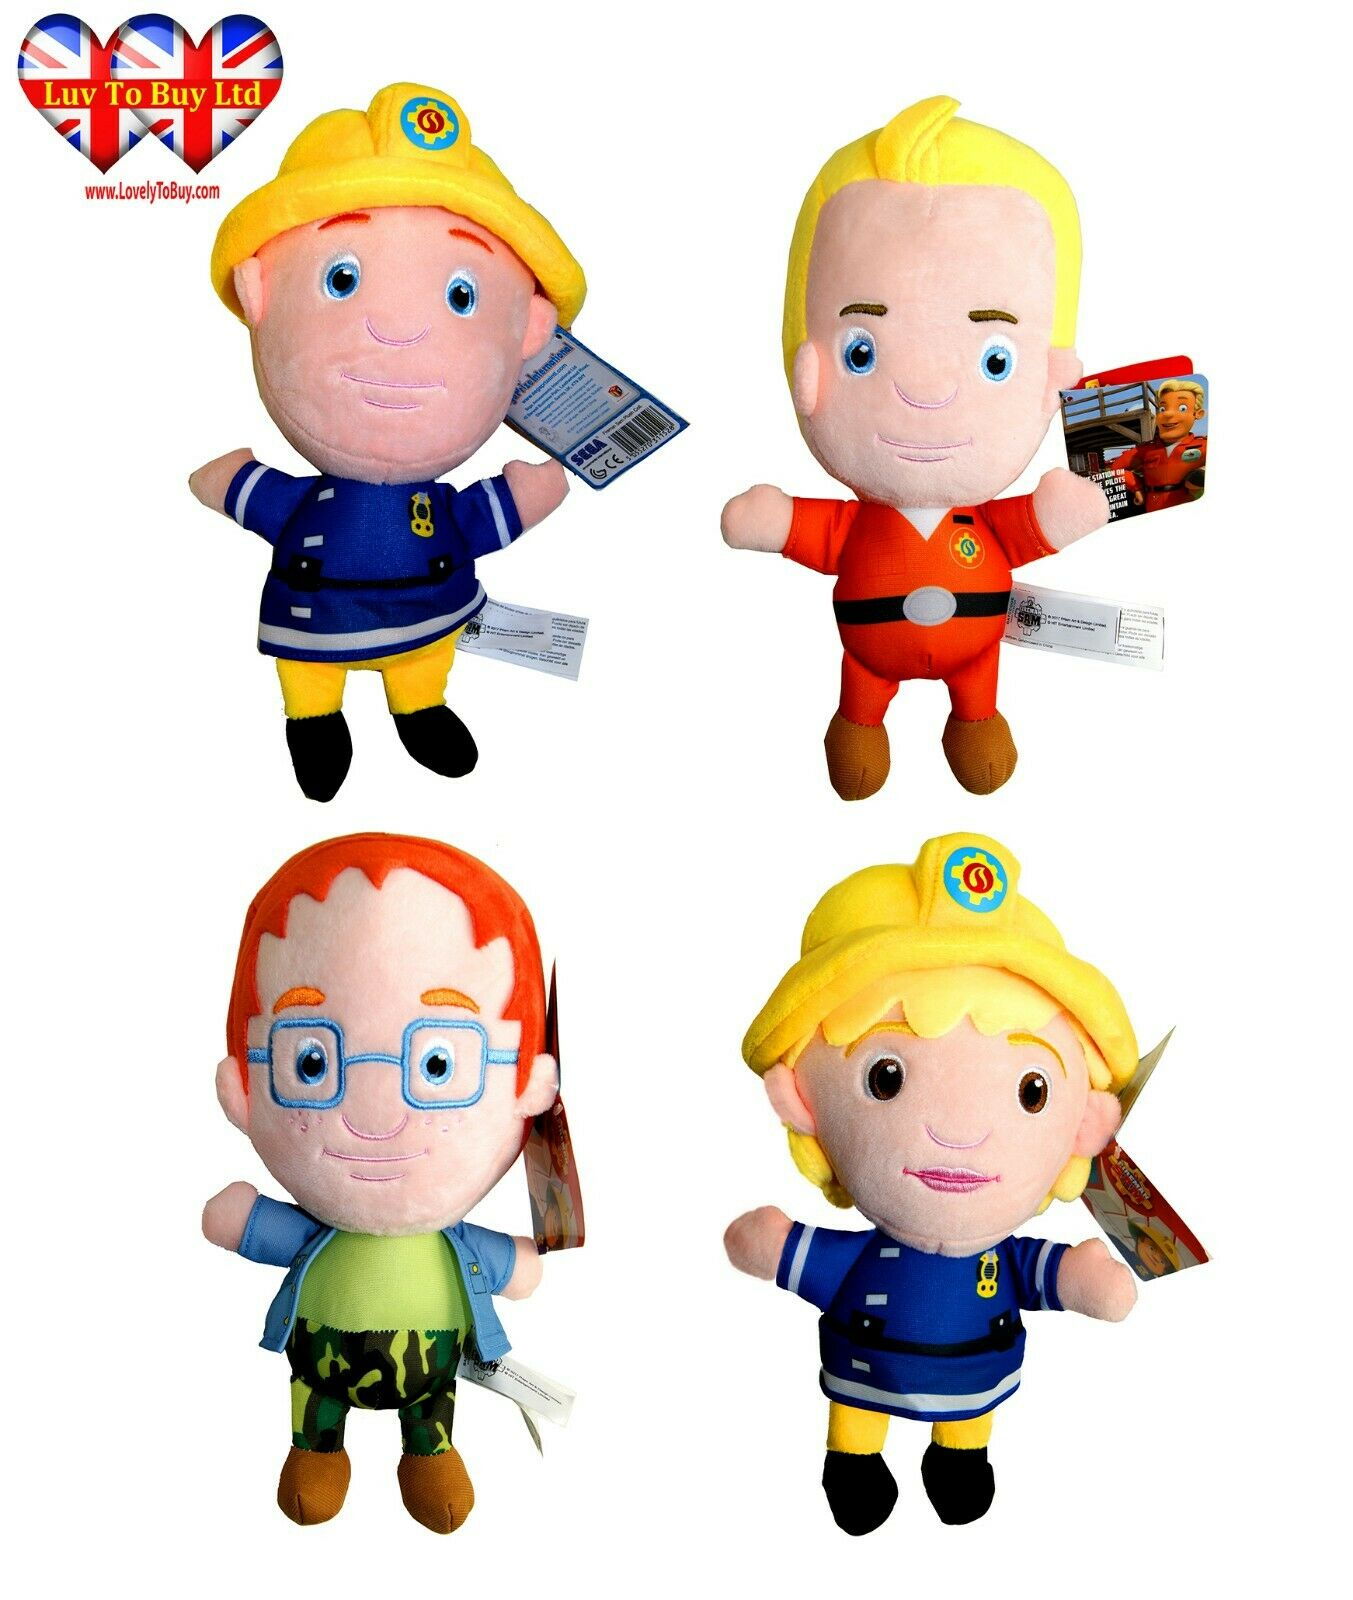 Fireman Sam plush character various characters, 11  Soft Toys,Official Licensed